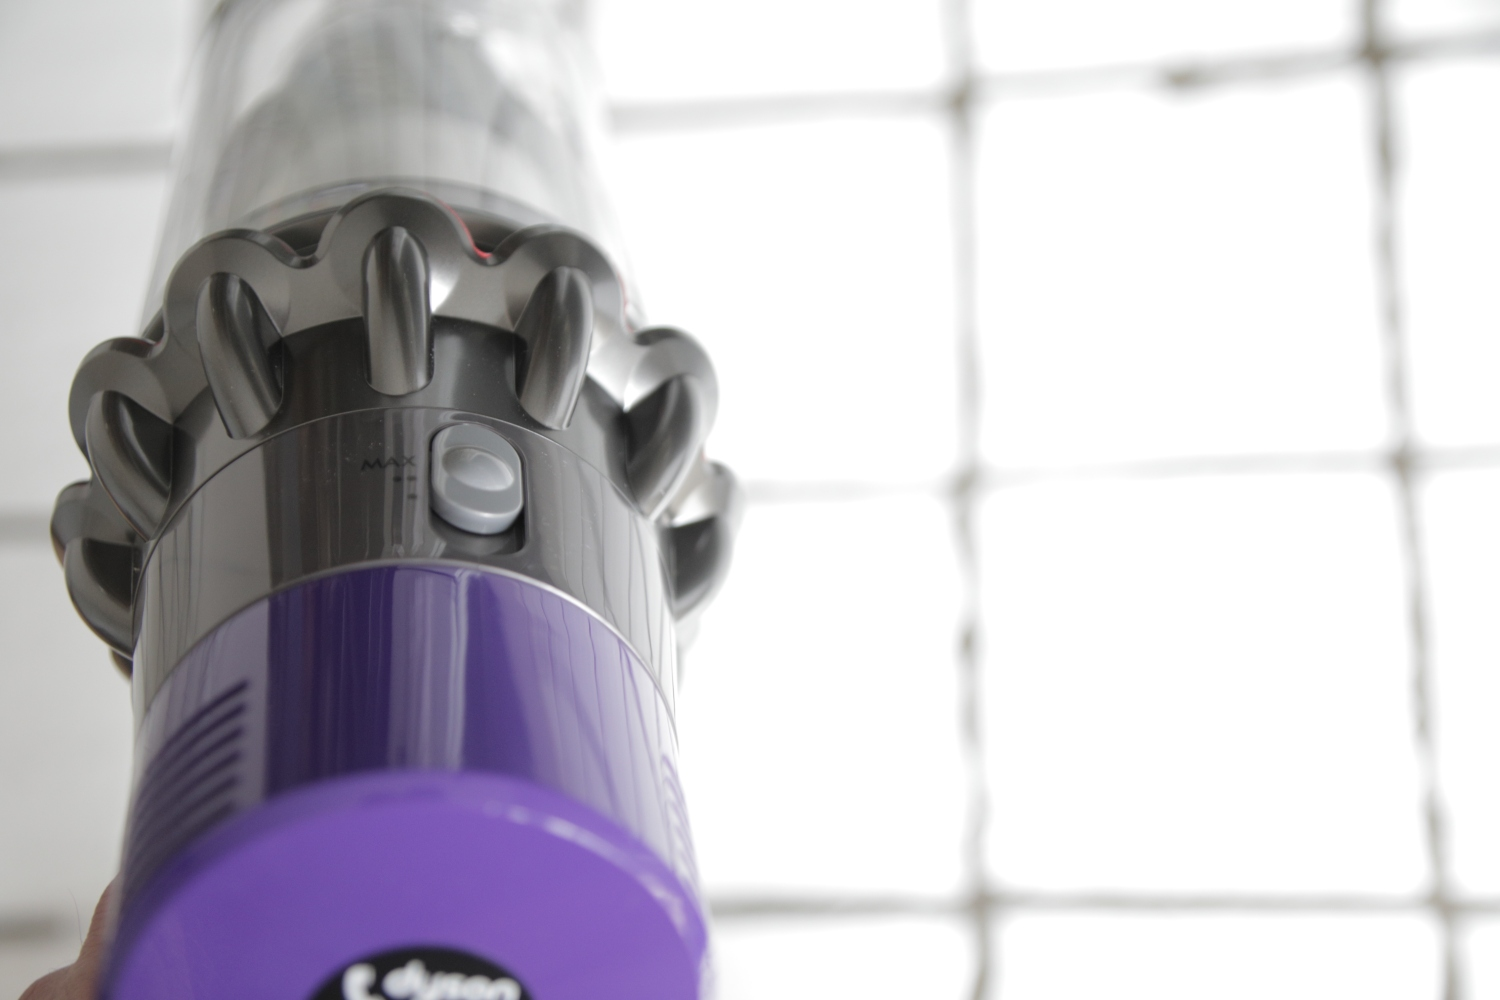 Dyson's Cyclone V10 cordless vacuum spells the end for corded